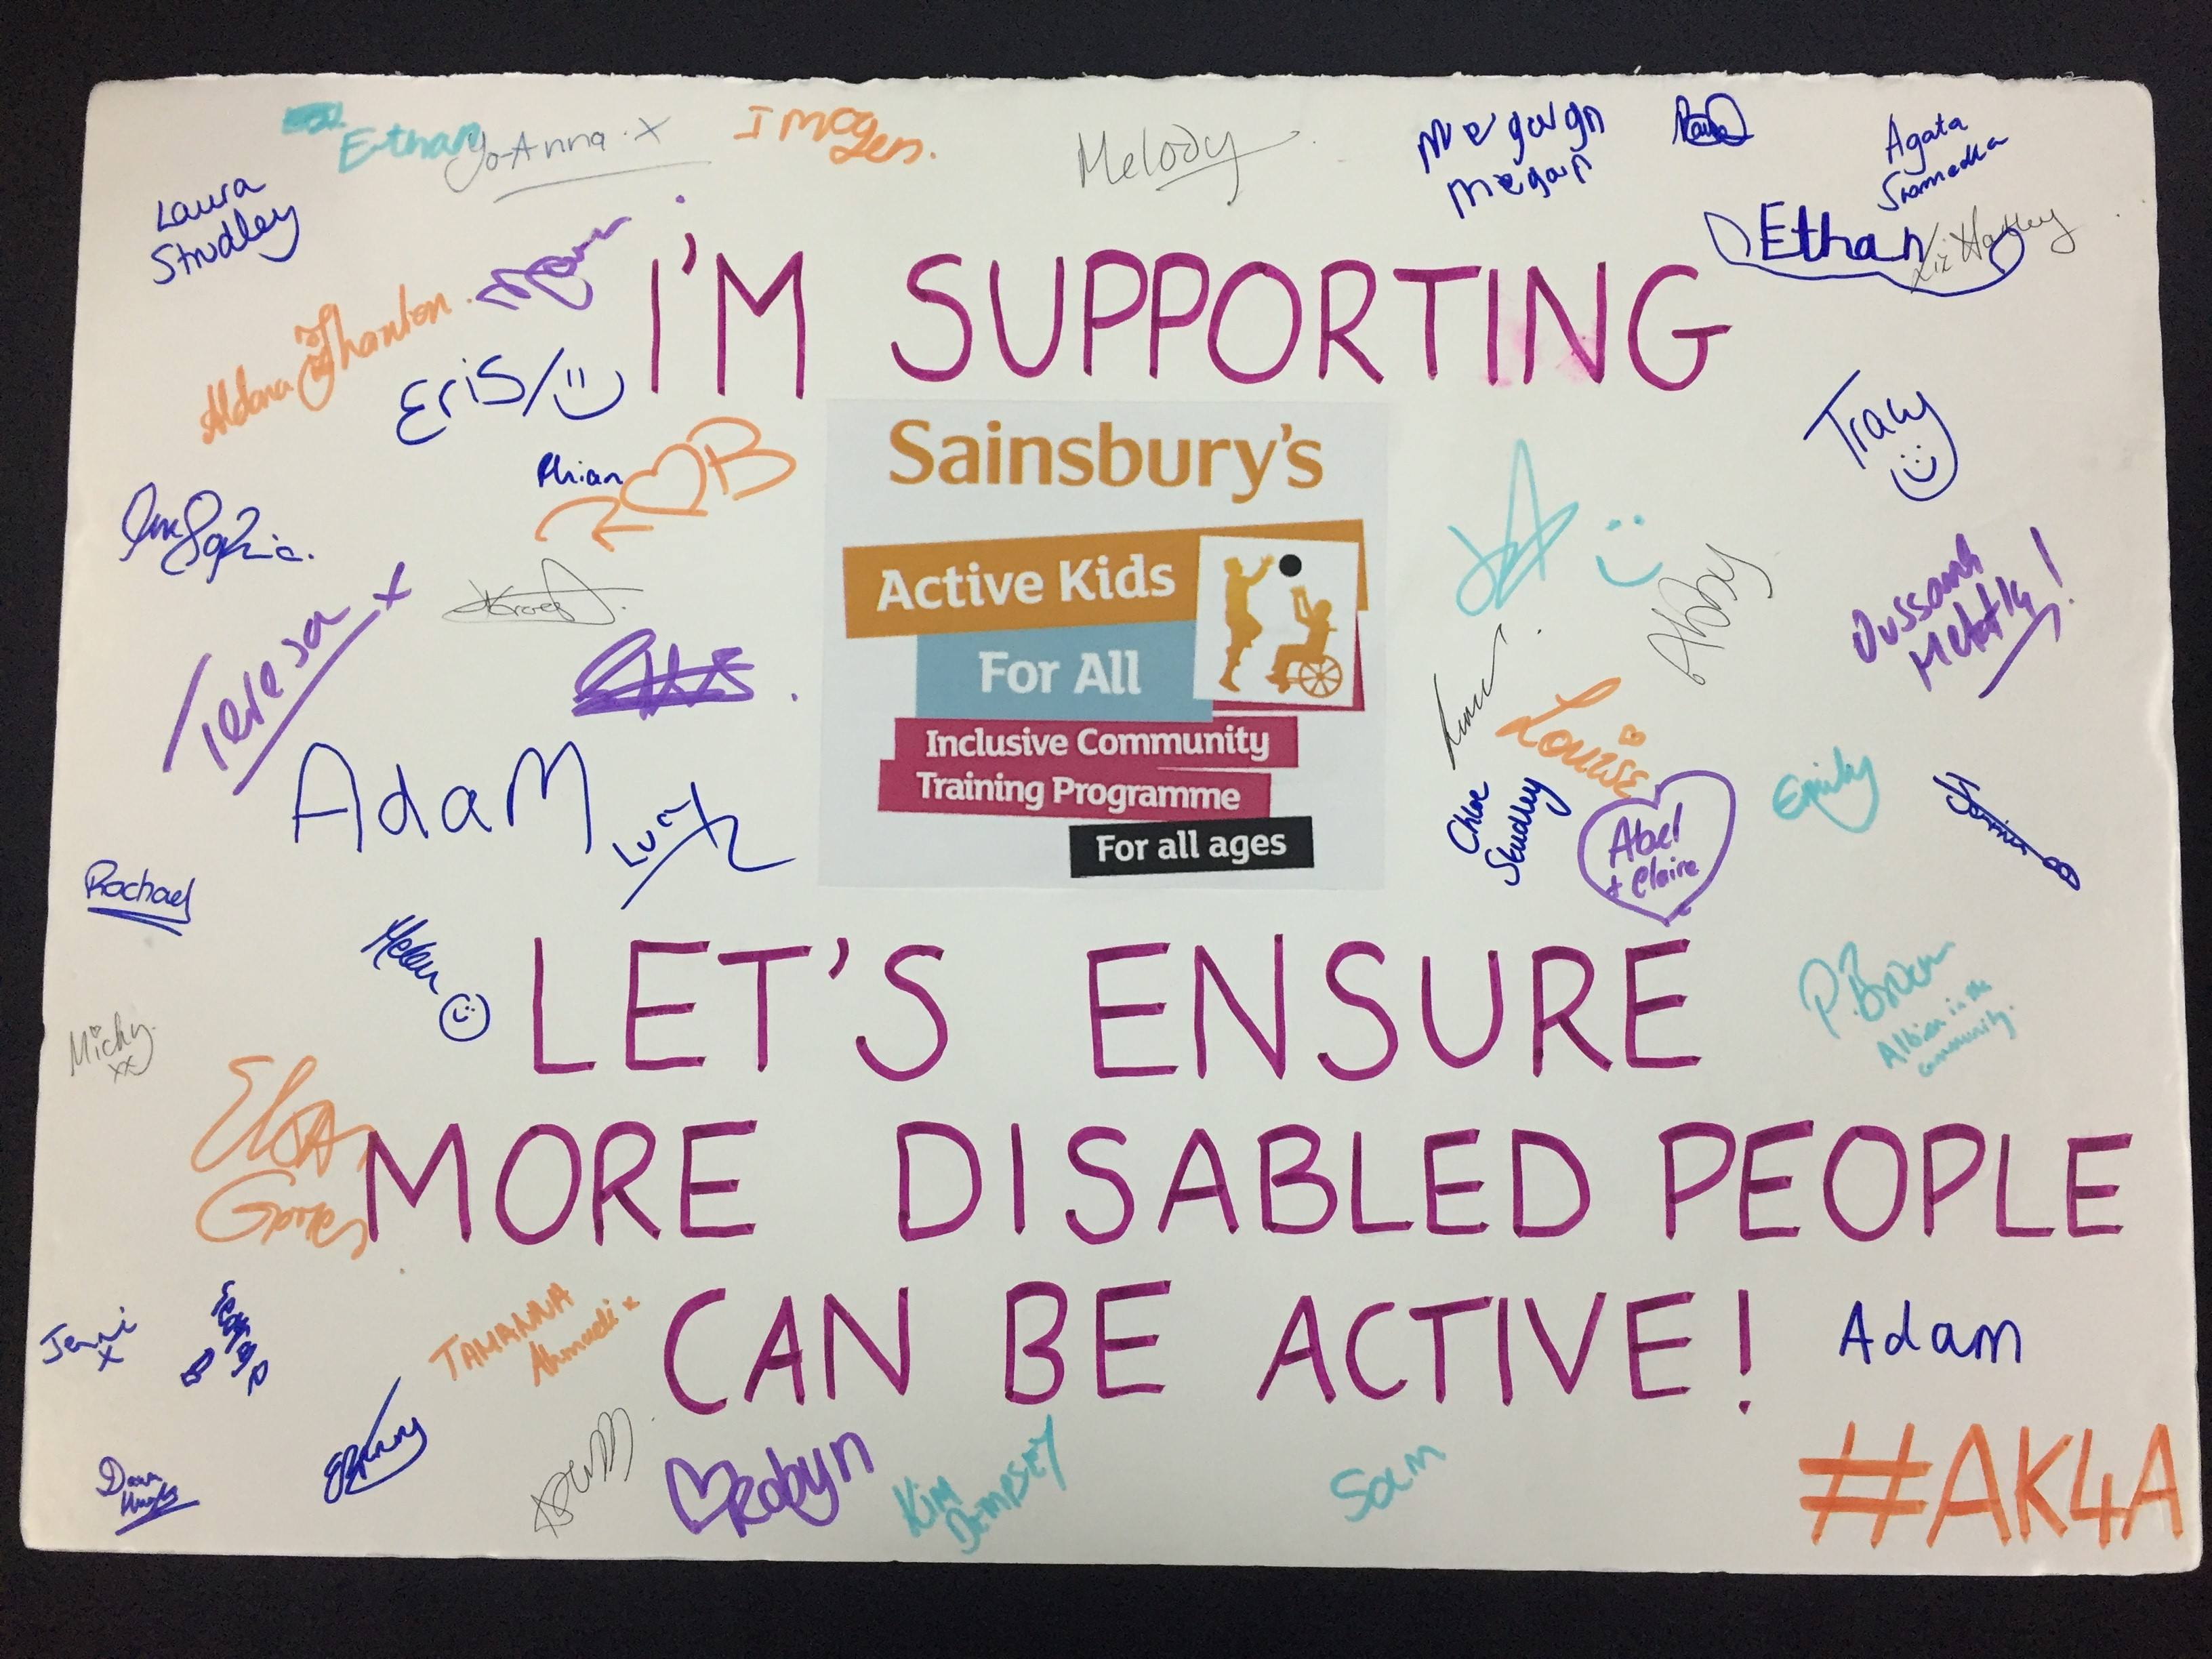 Signed pledge board reading 'Let's ensure more disabled people can be active!""